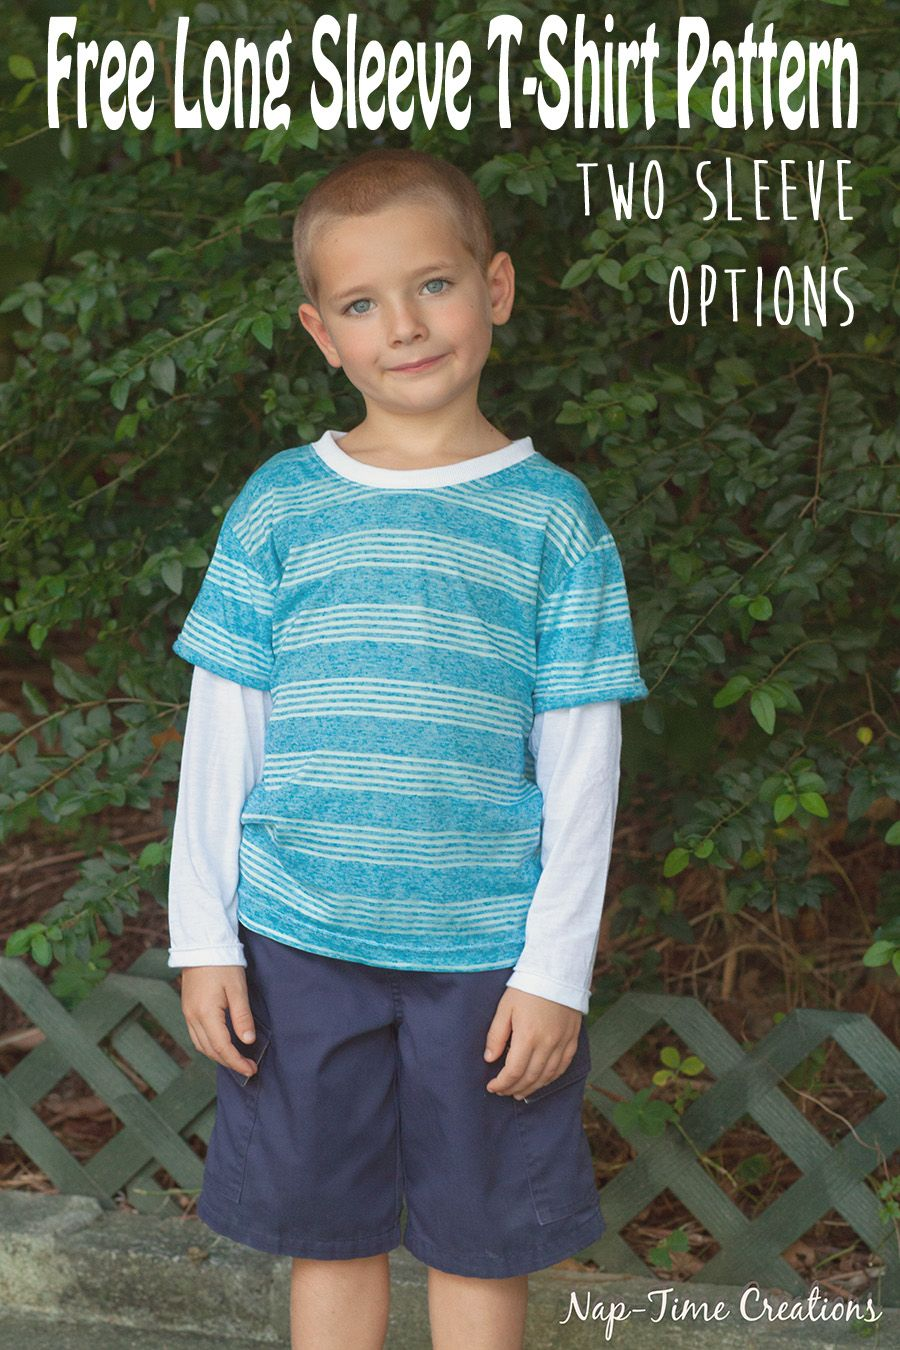 e14bea040 Boys Long Sleeve T-Shirt Free Pattern from Nap-Time Creations ...